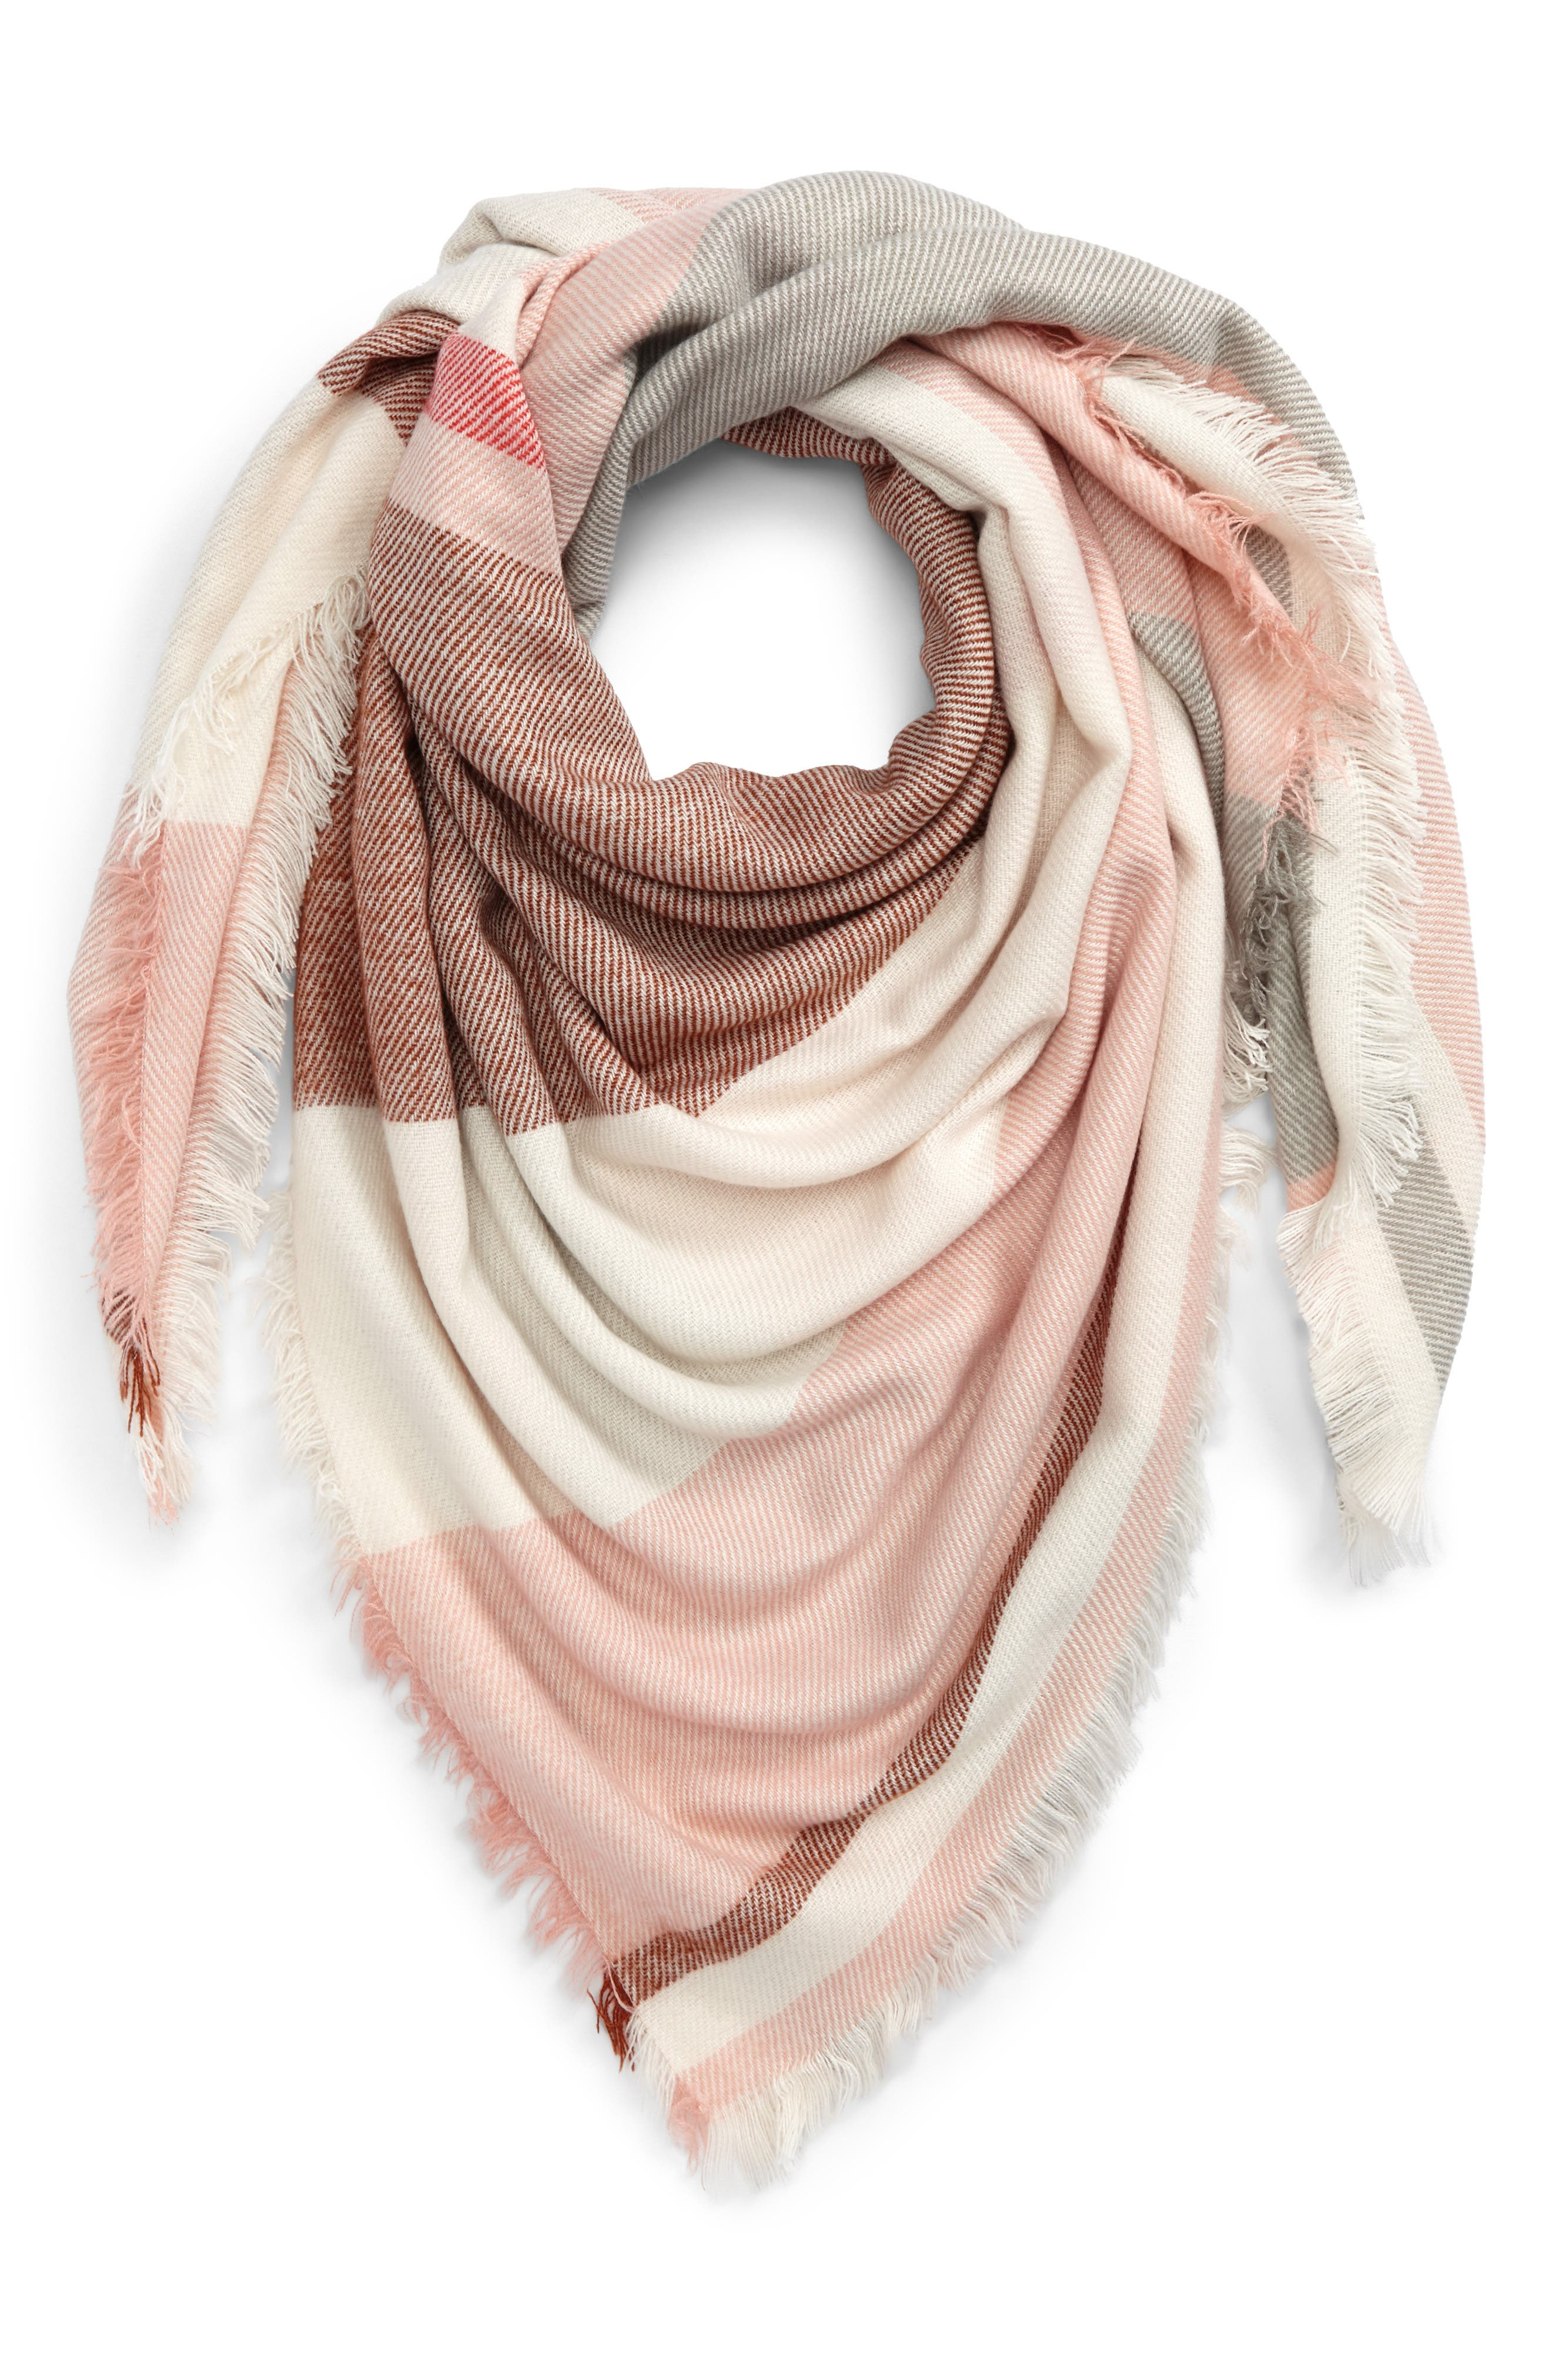 Colorblock Blanket Scarf,                             Alternate thumbnail 2, color,                             Cream/ Pink/ Bison